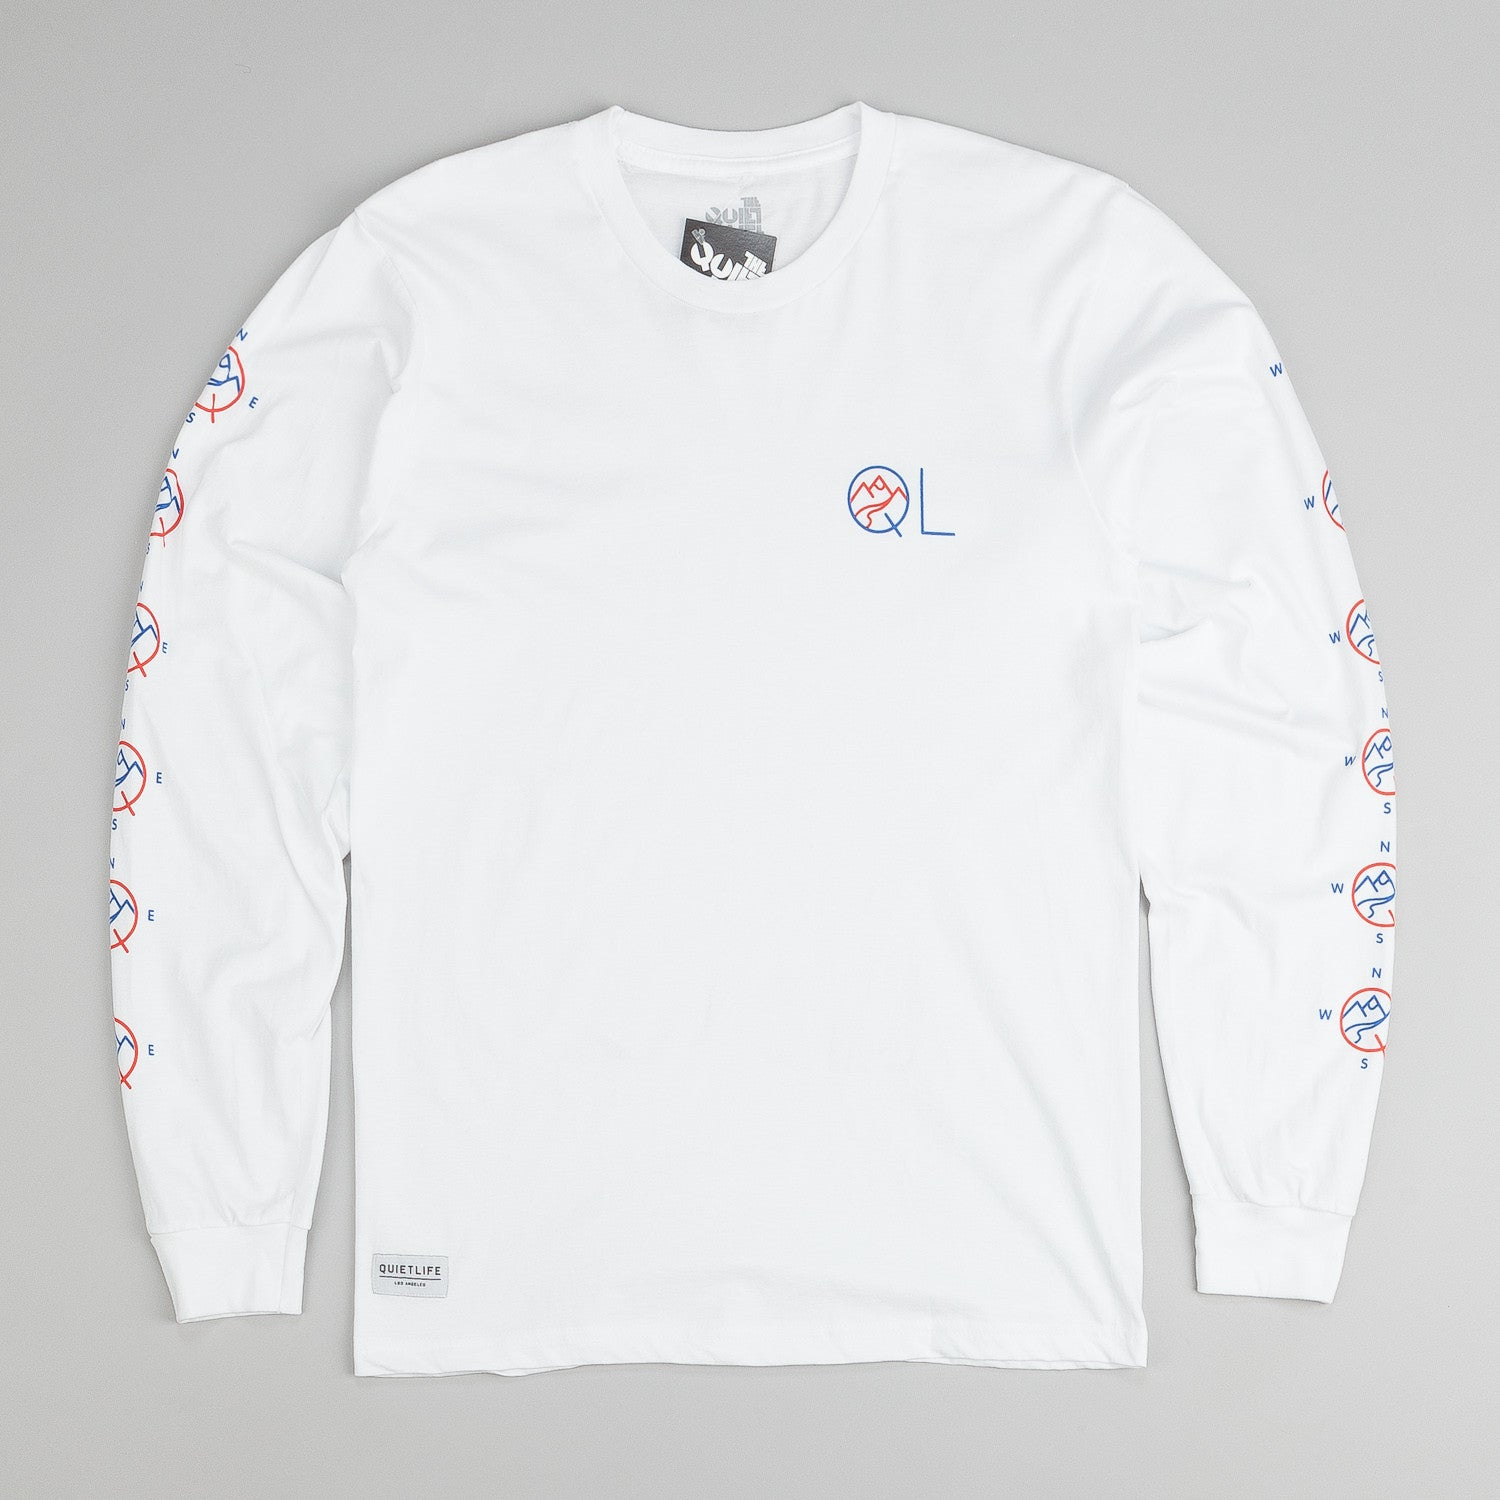 The Quiet Life Mountain L/S T-Shirt